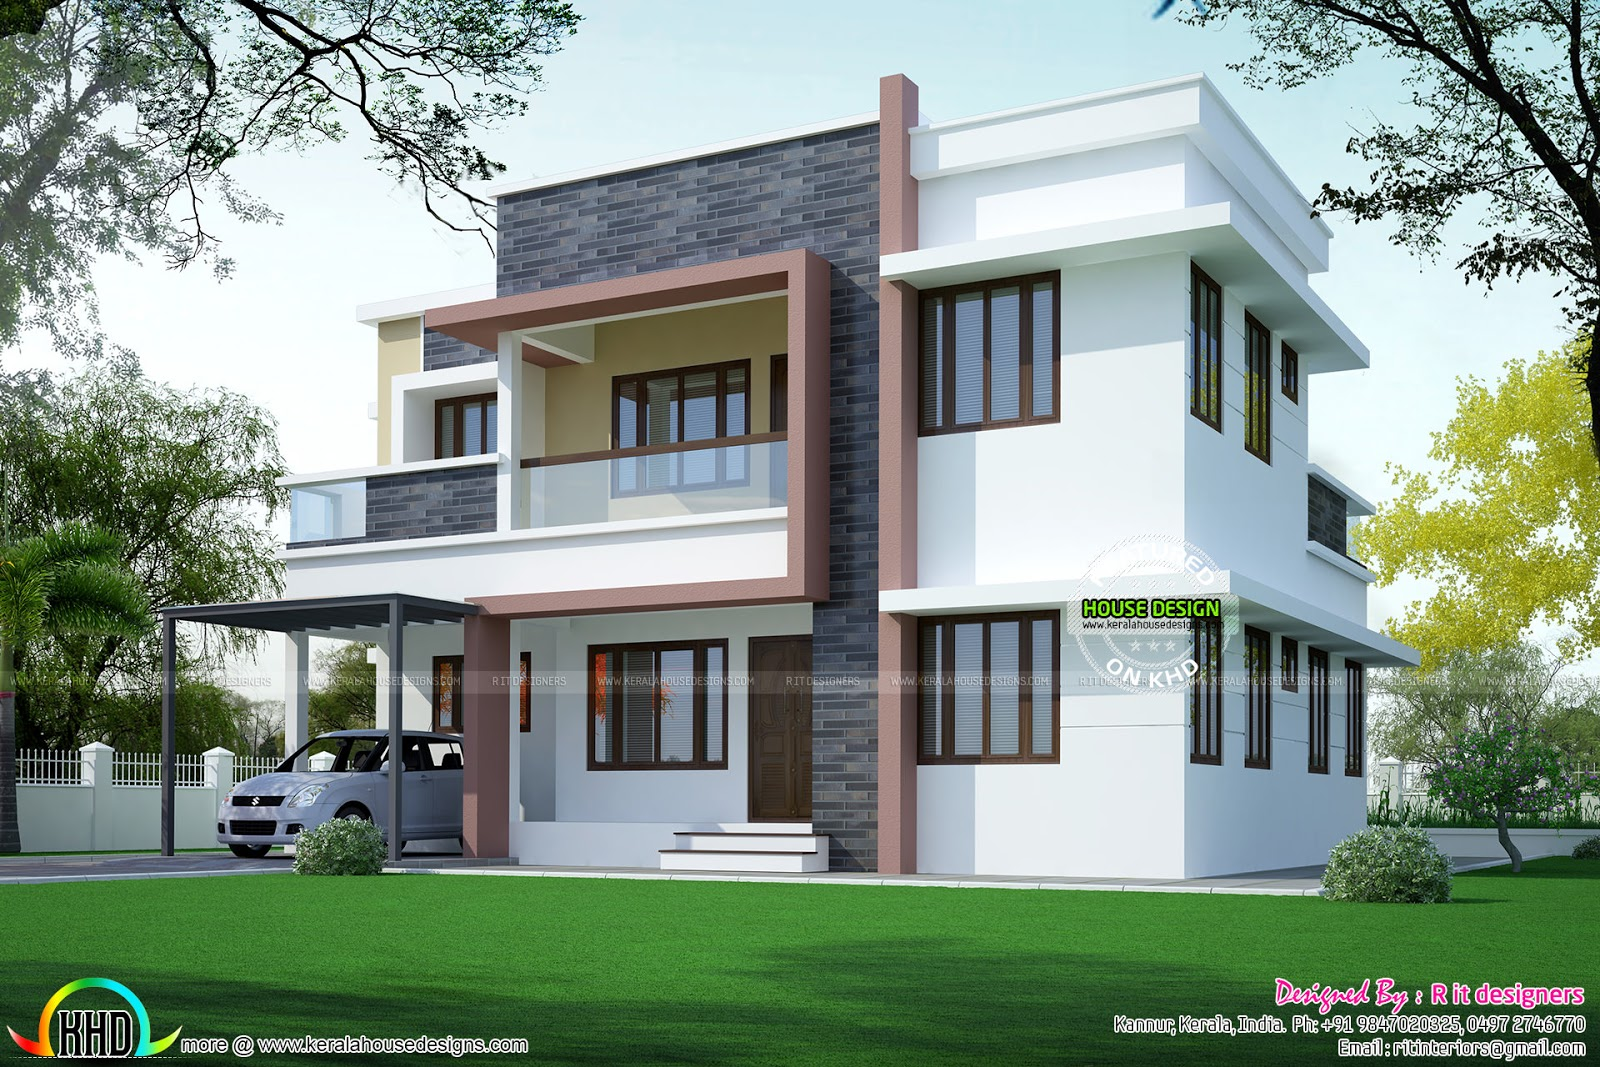 Simple home plan in modern style kerala home design and floor plans Easy home design program